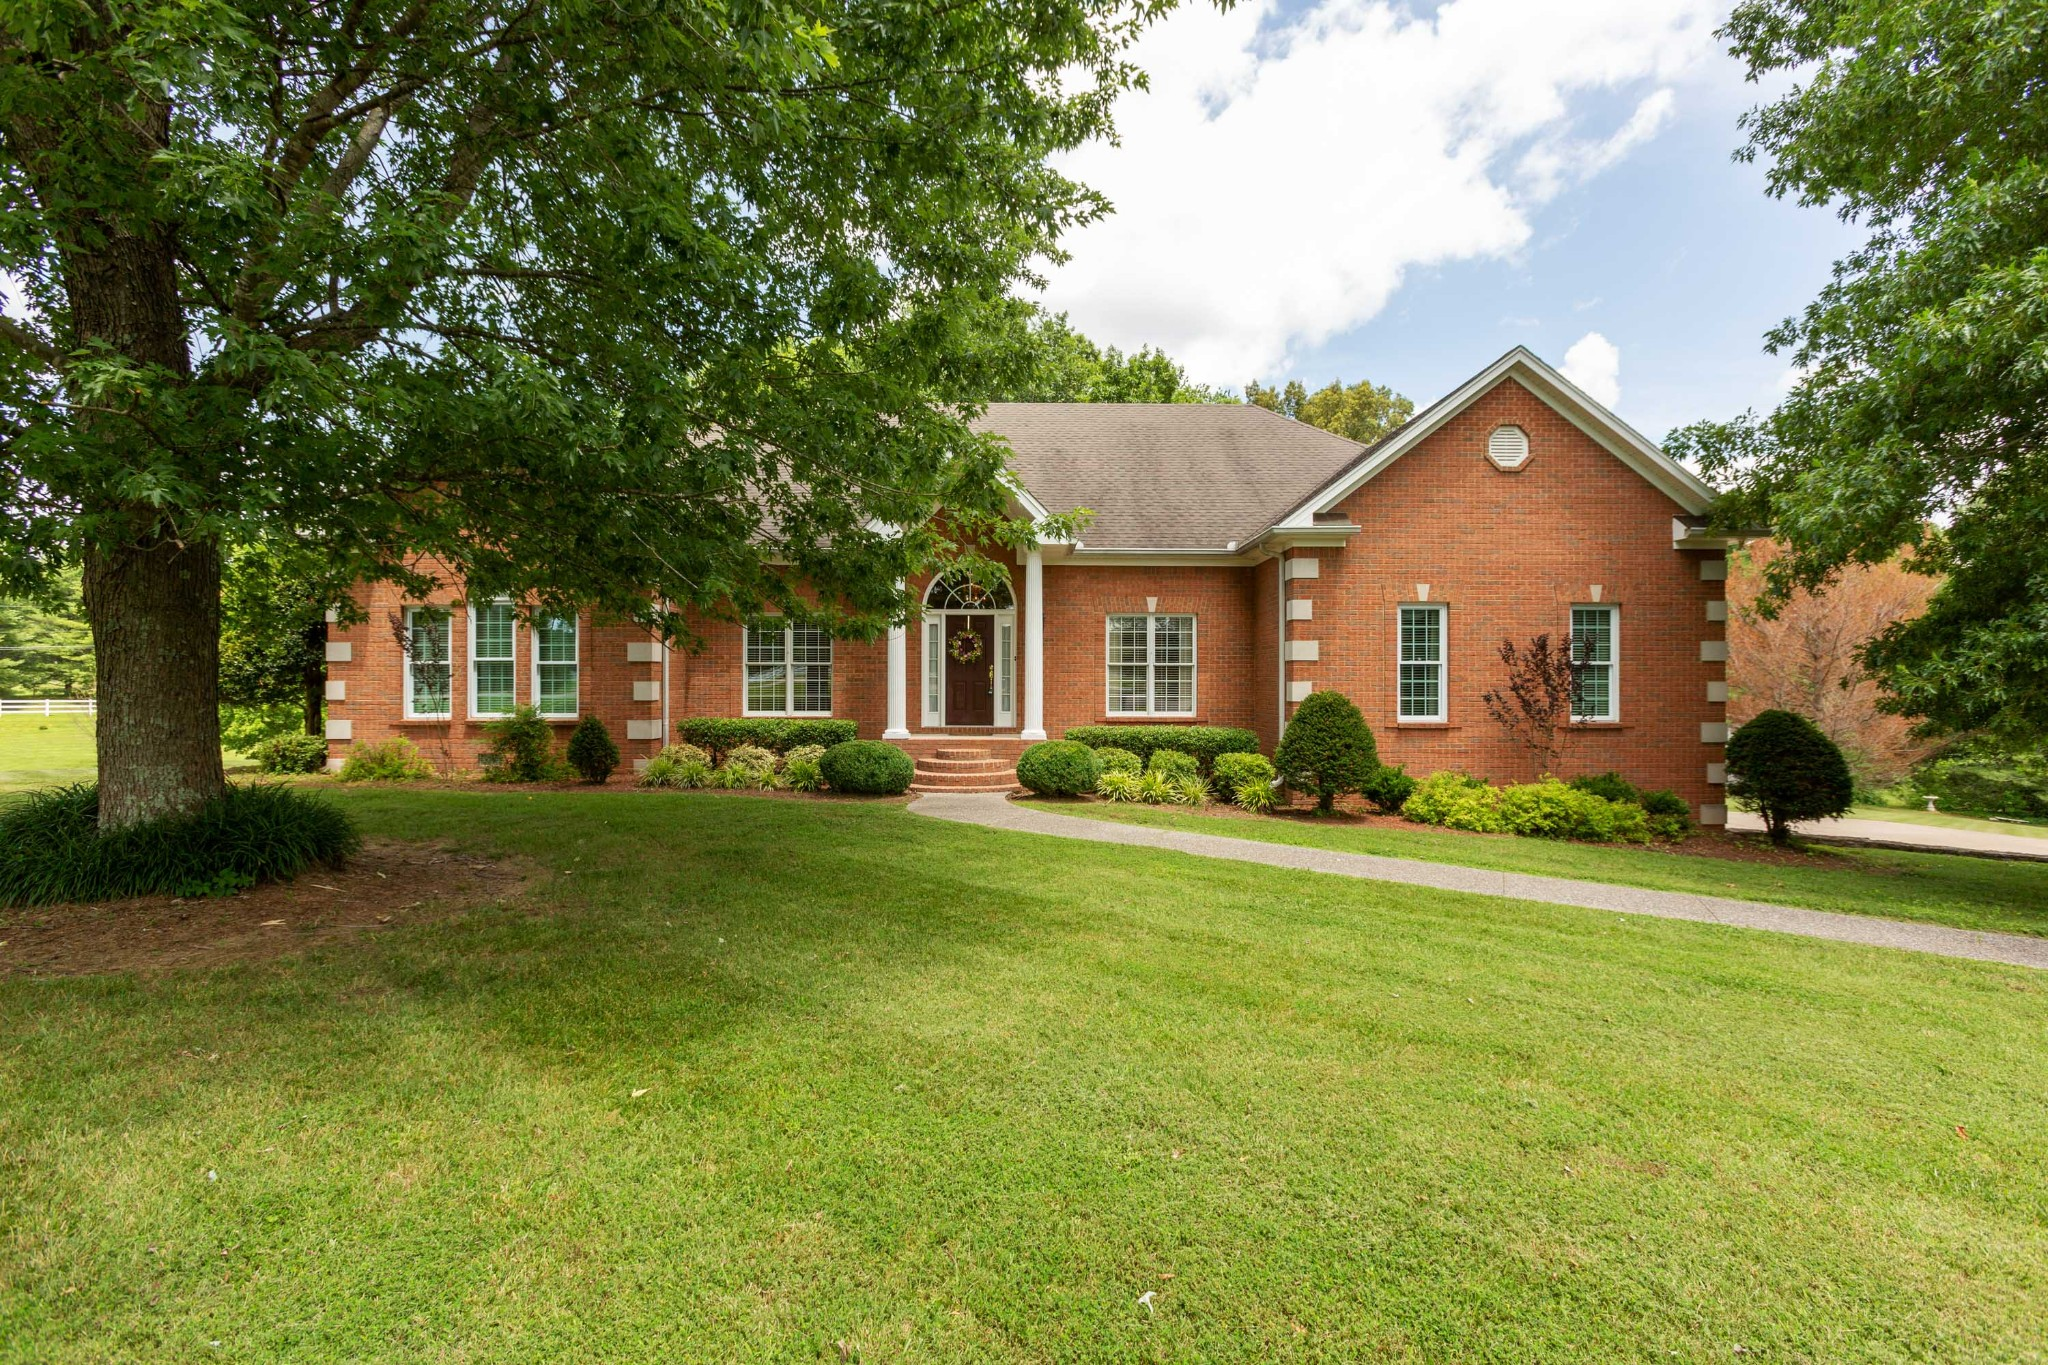 Beautiful Custom Built Home  On 3.39 Acre Lot!  1072 Pleasant Valley Rd. Lot 11, Greenbrier, TN.  37073